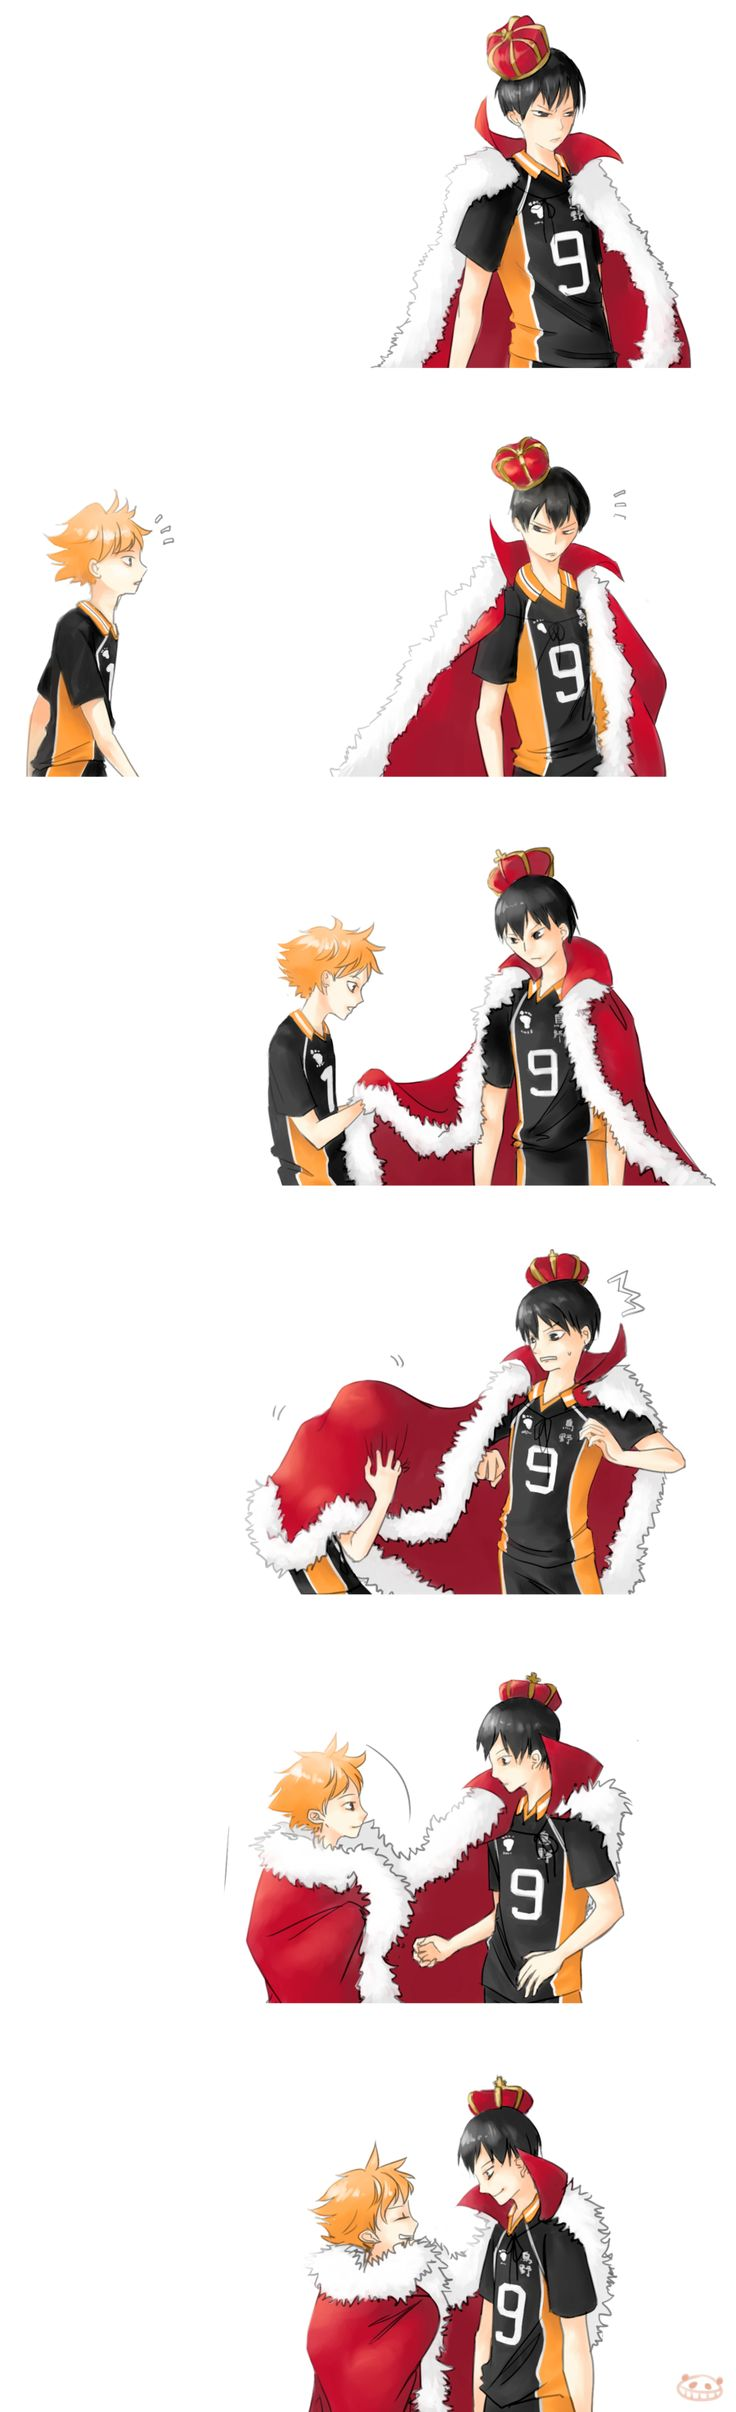 Haikyuu!! ~~ I would love to see the team depicted as chess pieces! After all, we have the King and Queen right here... :: [ The King's first team mate by Dagneo.deviantart.com on @deviantART ]